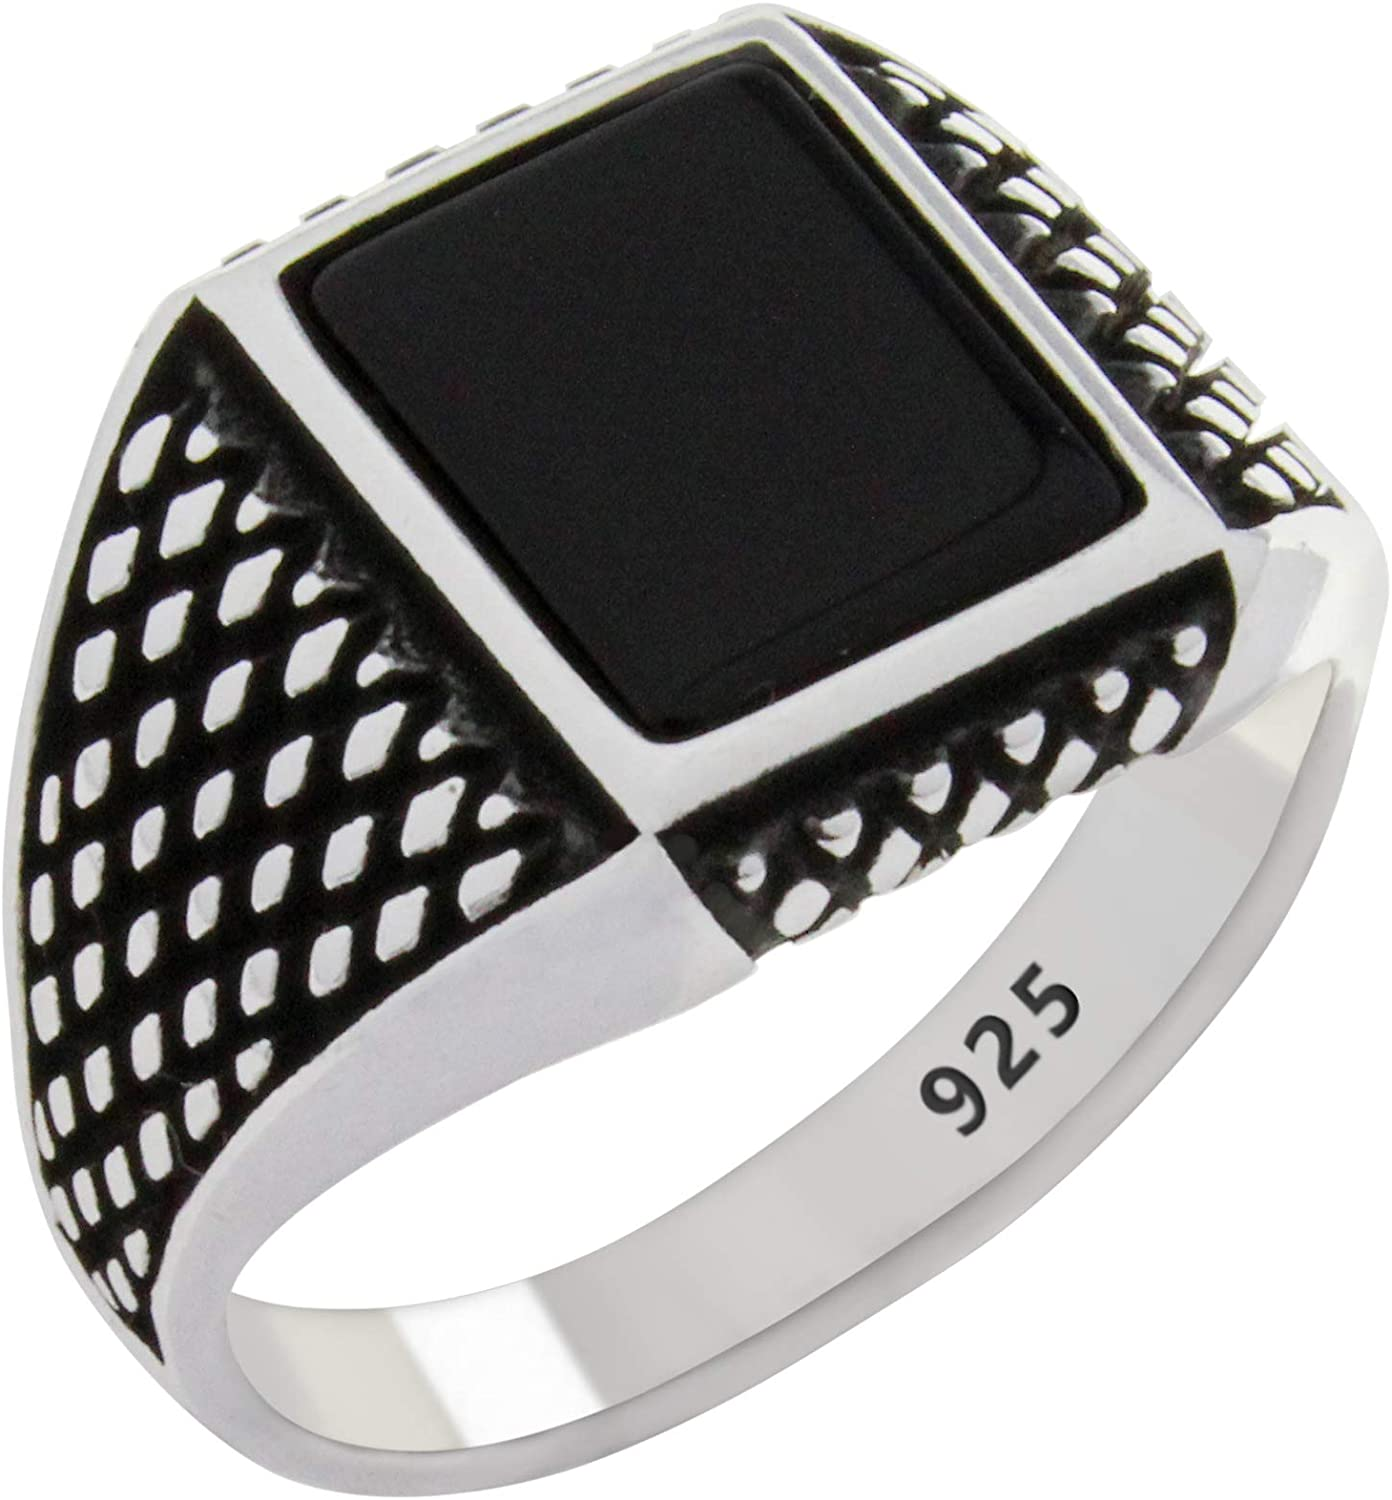 Exclusive  Design No Stone Turkish Handmade 925 Sterling Silver Mens Ring